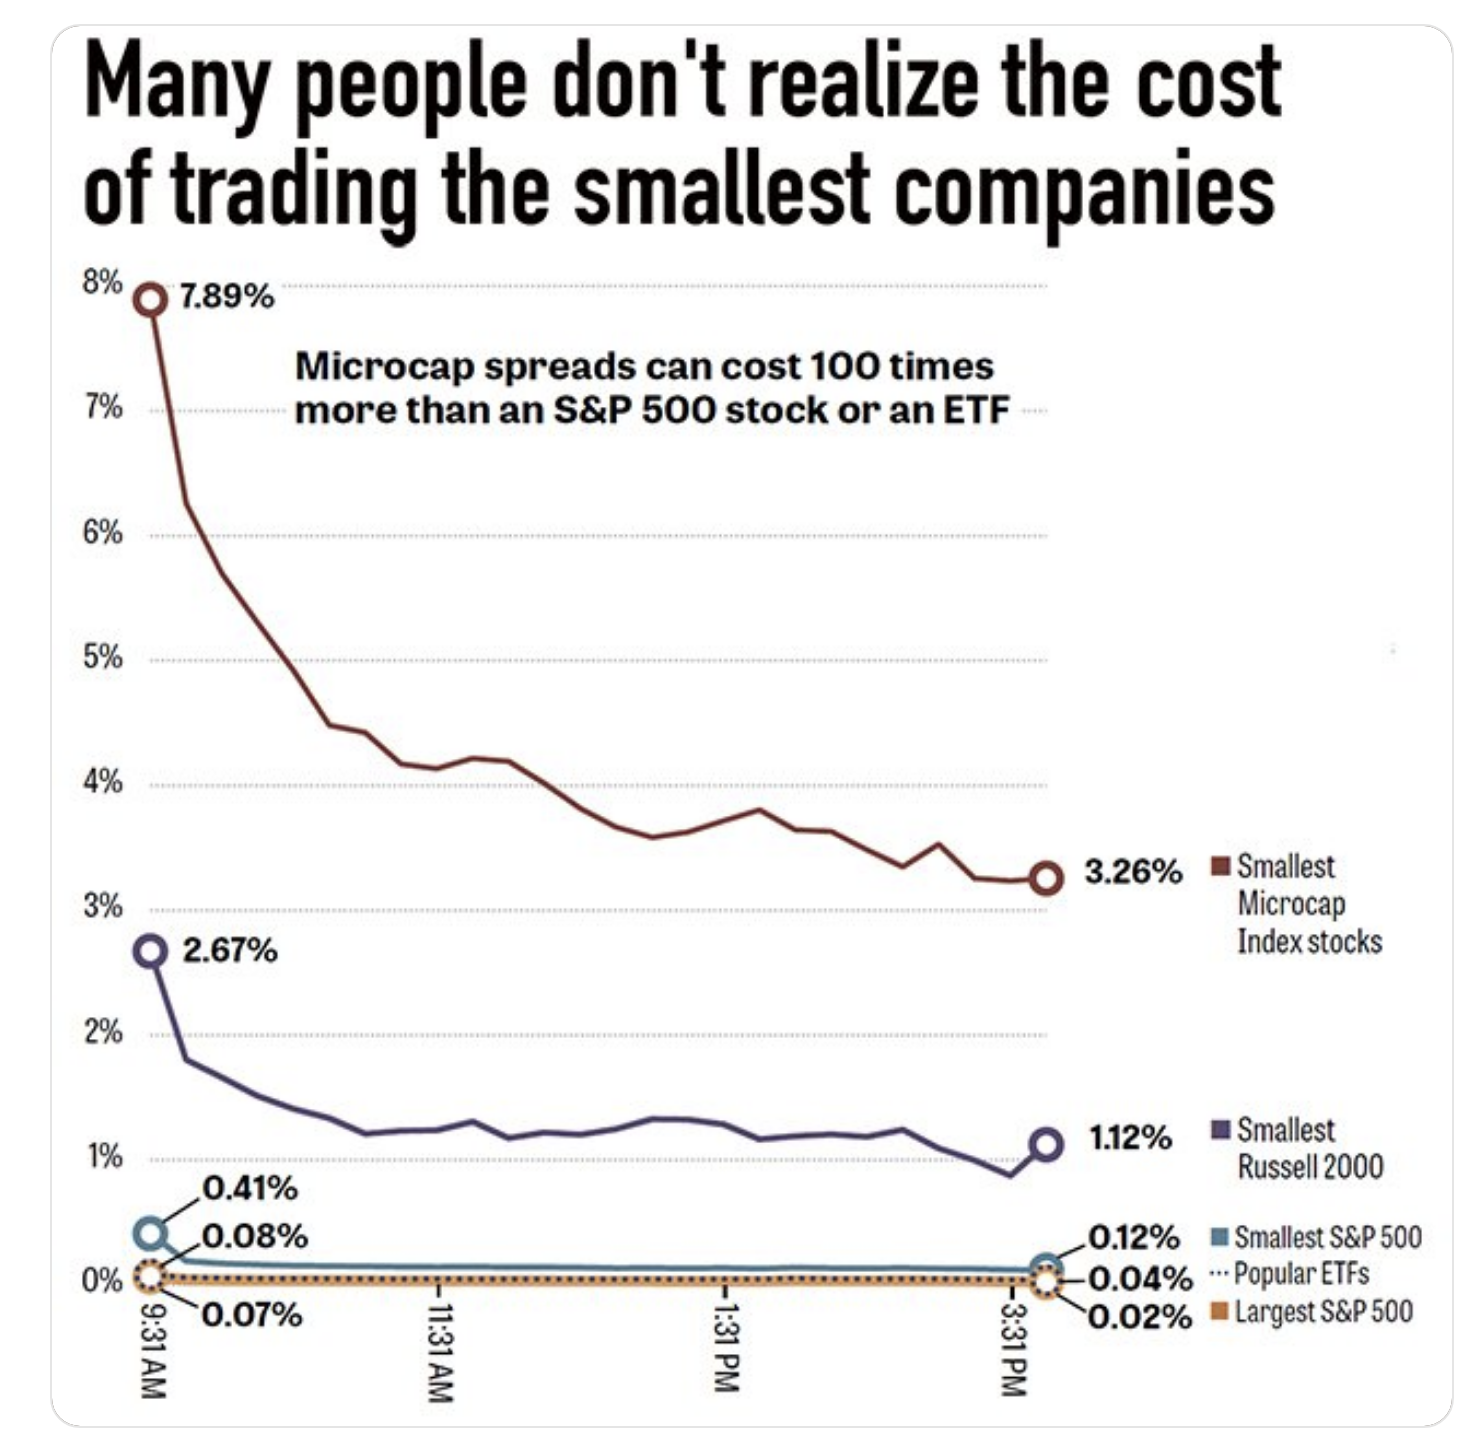 Many people don't realize the costof trading the smallest companies